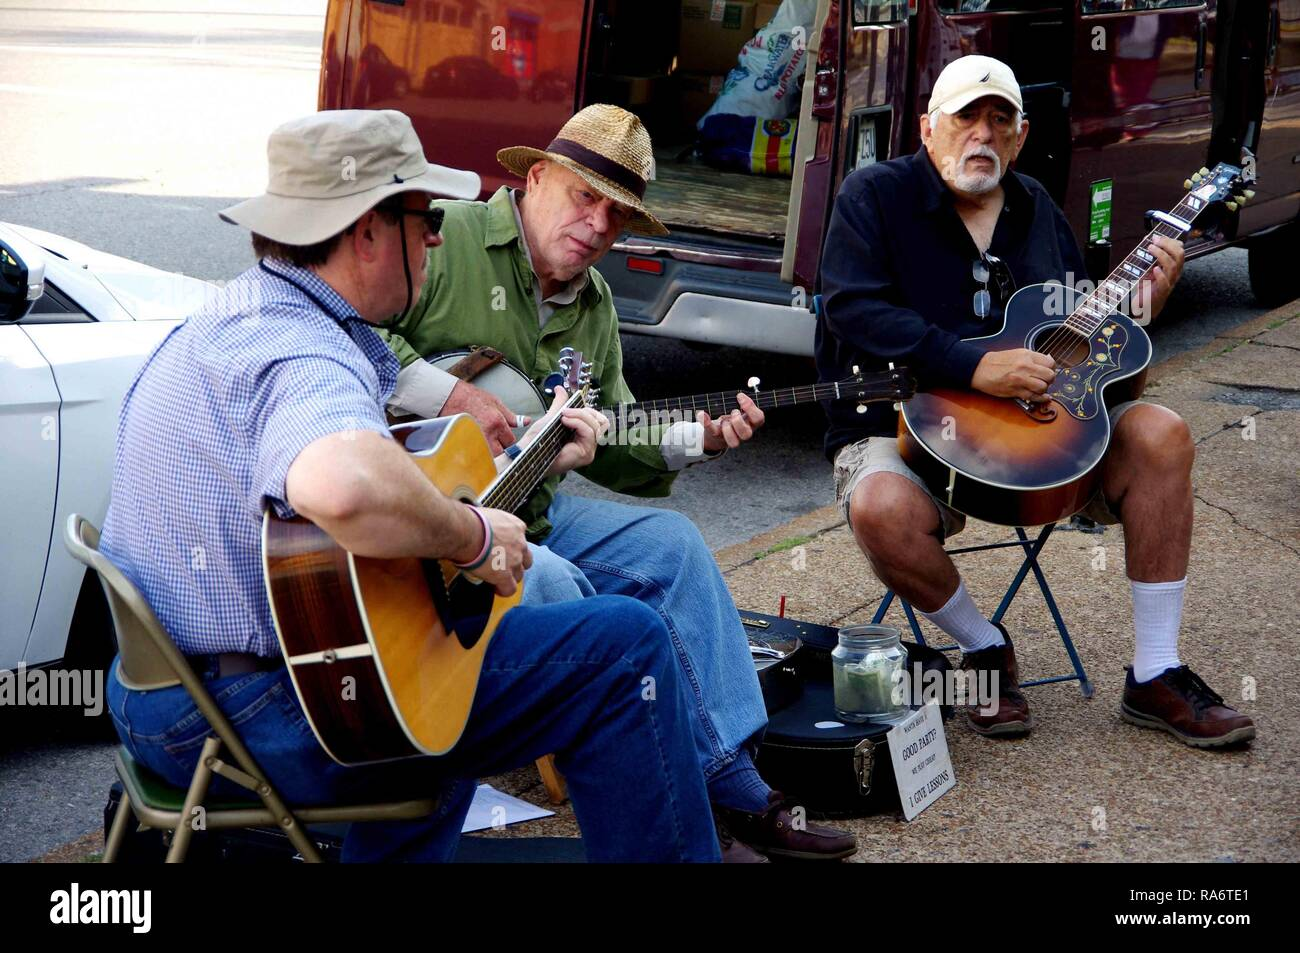 Saint Louis, MO--Sept 9, 2017; three bluegrass street musicians in hats playing guitars and a banjo outside the soulard farmers market for tips - Stock Image